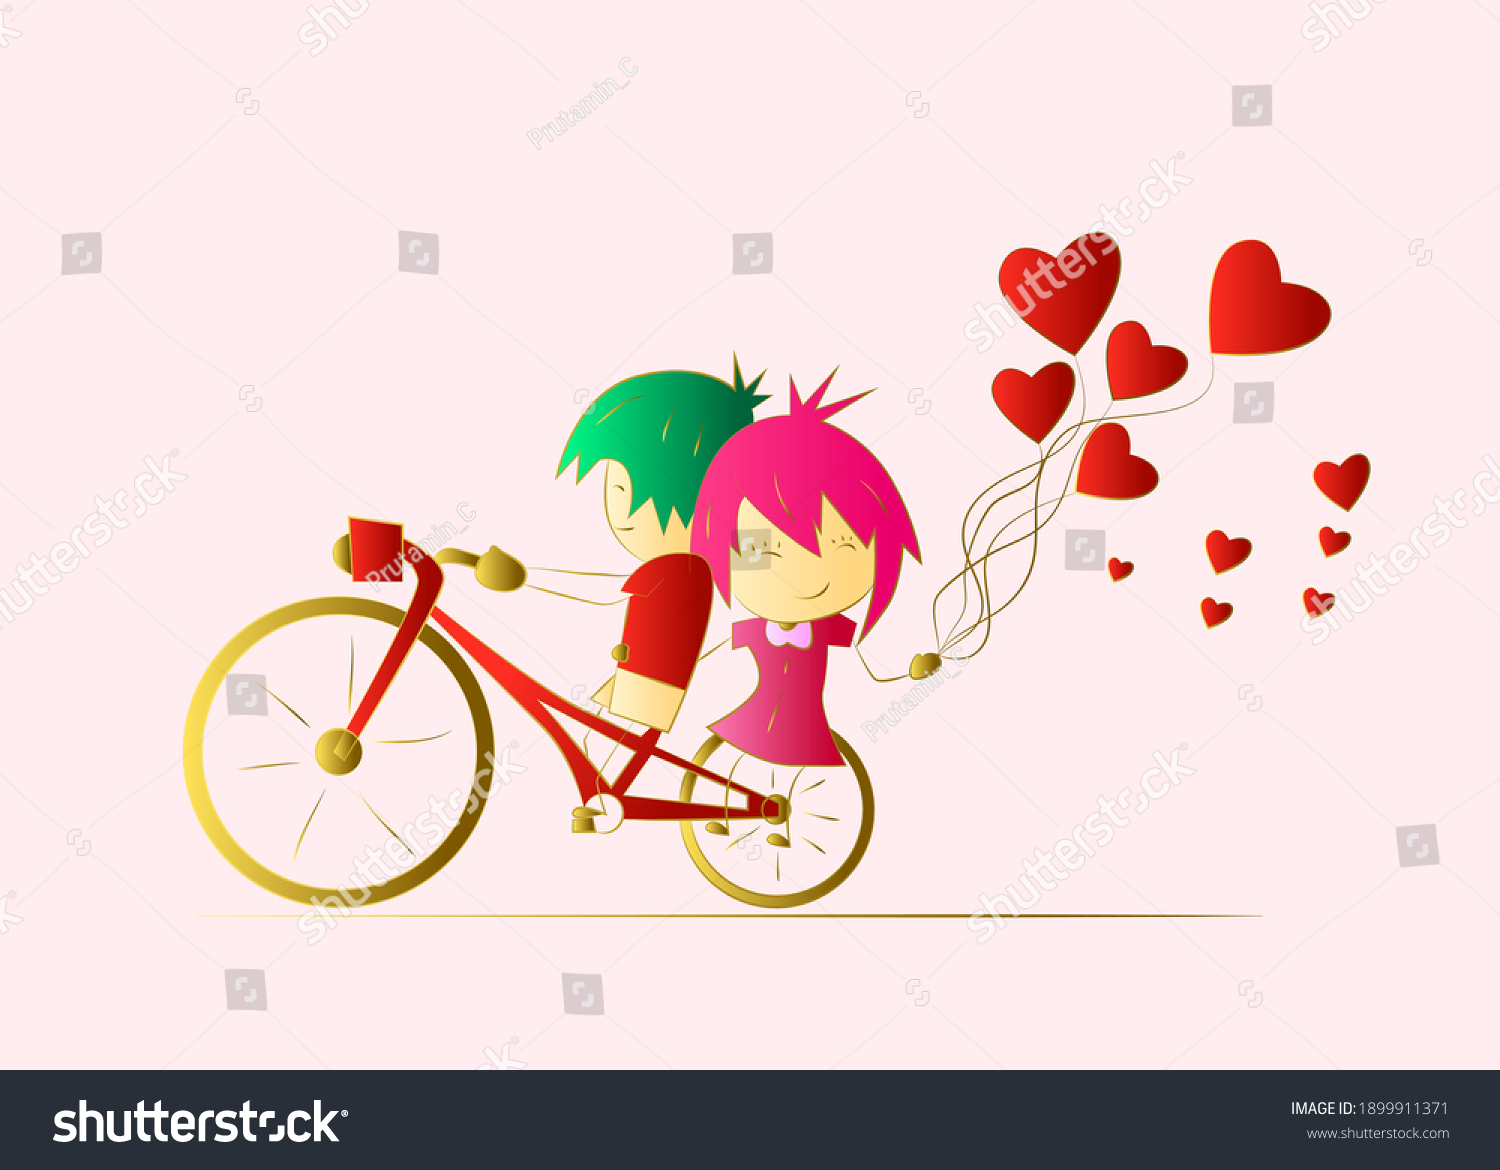 valentine background with 3D vector illustration